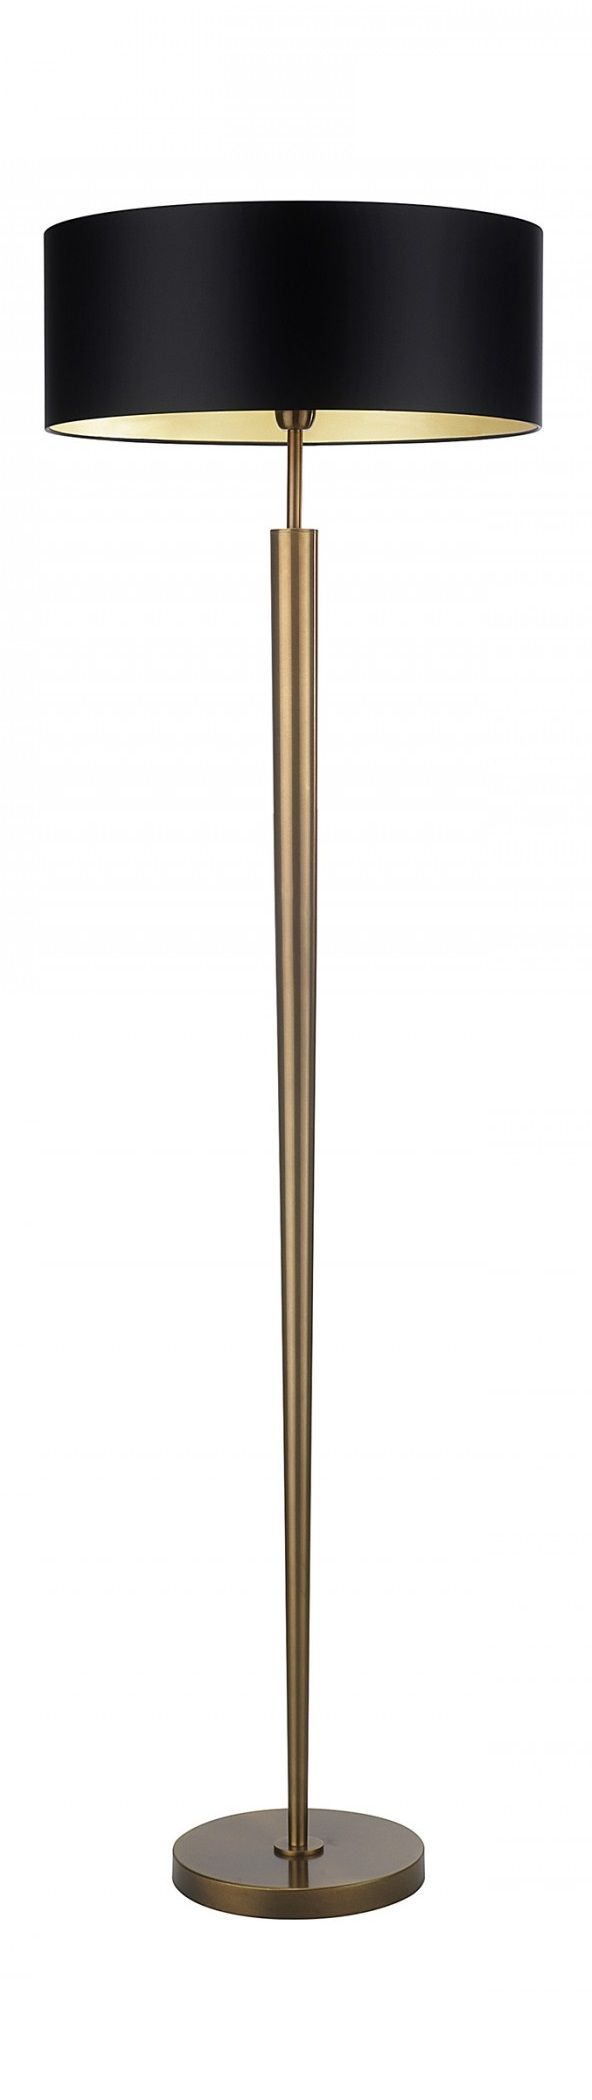 """hotel floor lamps"" ""hotel guest room floor lamps"" By InStyle-Decor.com Hollywood, for more beautiful ""floor Lamp"" inspirations use our site search box entering term ""floor lamp"" hotel floor lamp suppliers, hotel floor lamp manufacturers, hotel lighting manufacturers, hotel lighting suppliers, hotel interior design, hotel interior design firms, hotel interior decorators, hospitality lighting, hospitality lighting suppliers, hospitality lighting manufacturers, hospitality interior design"